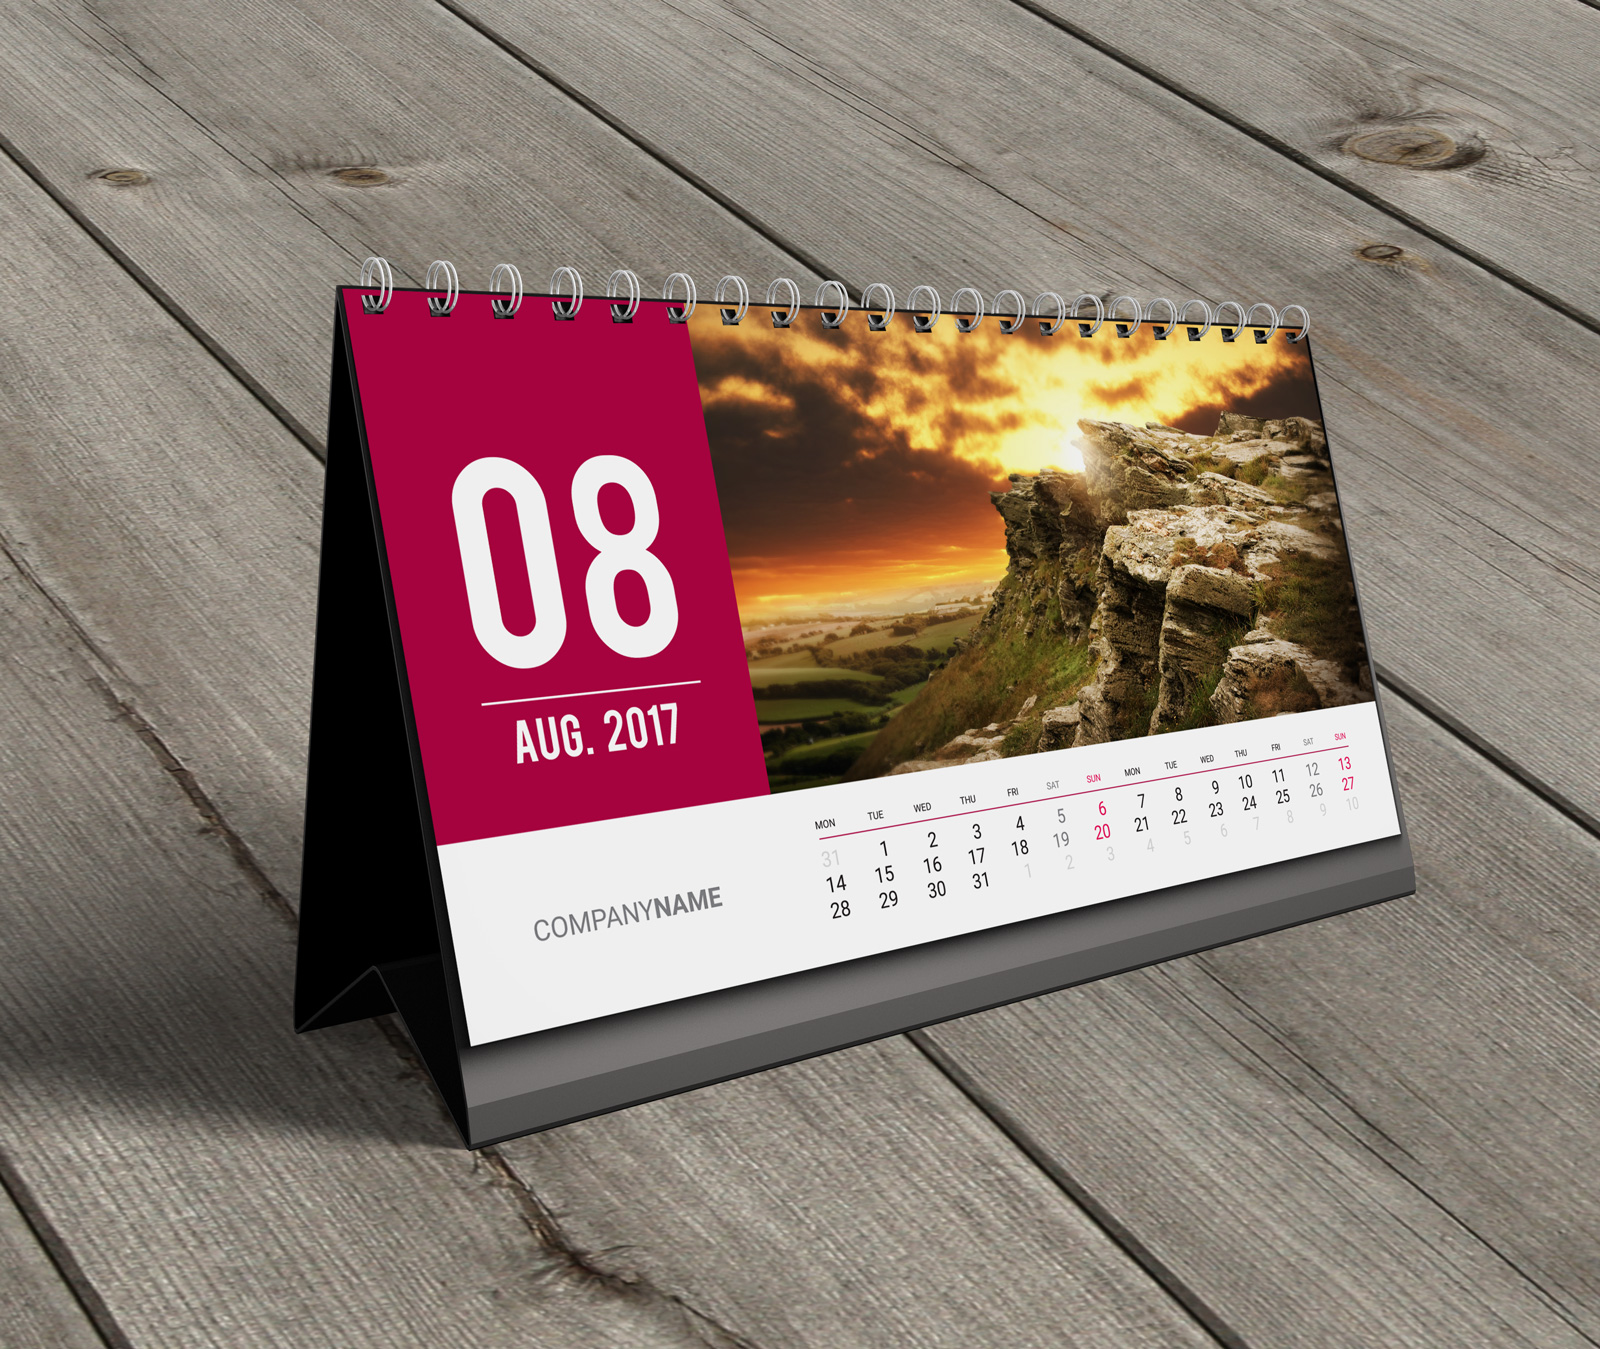 ad premier calendar m wp with desk color calendars warwick publishing